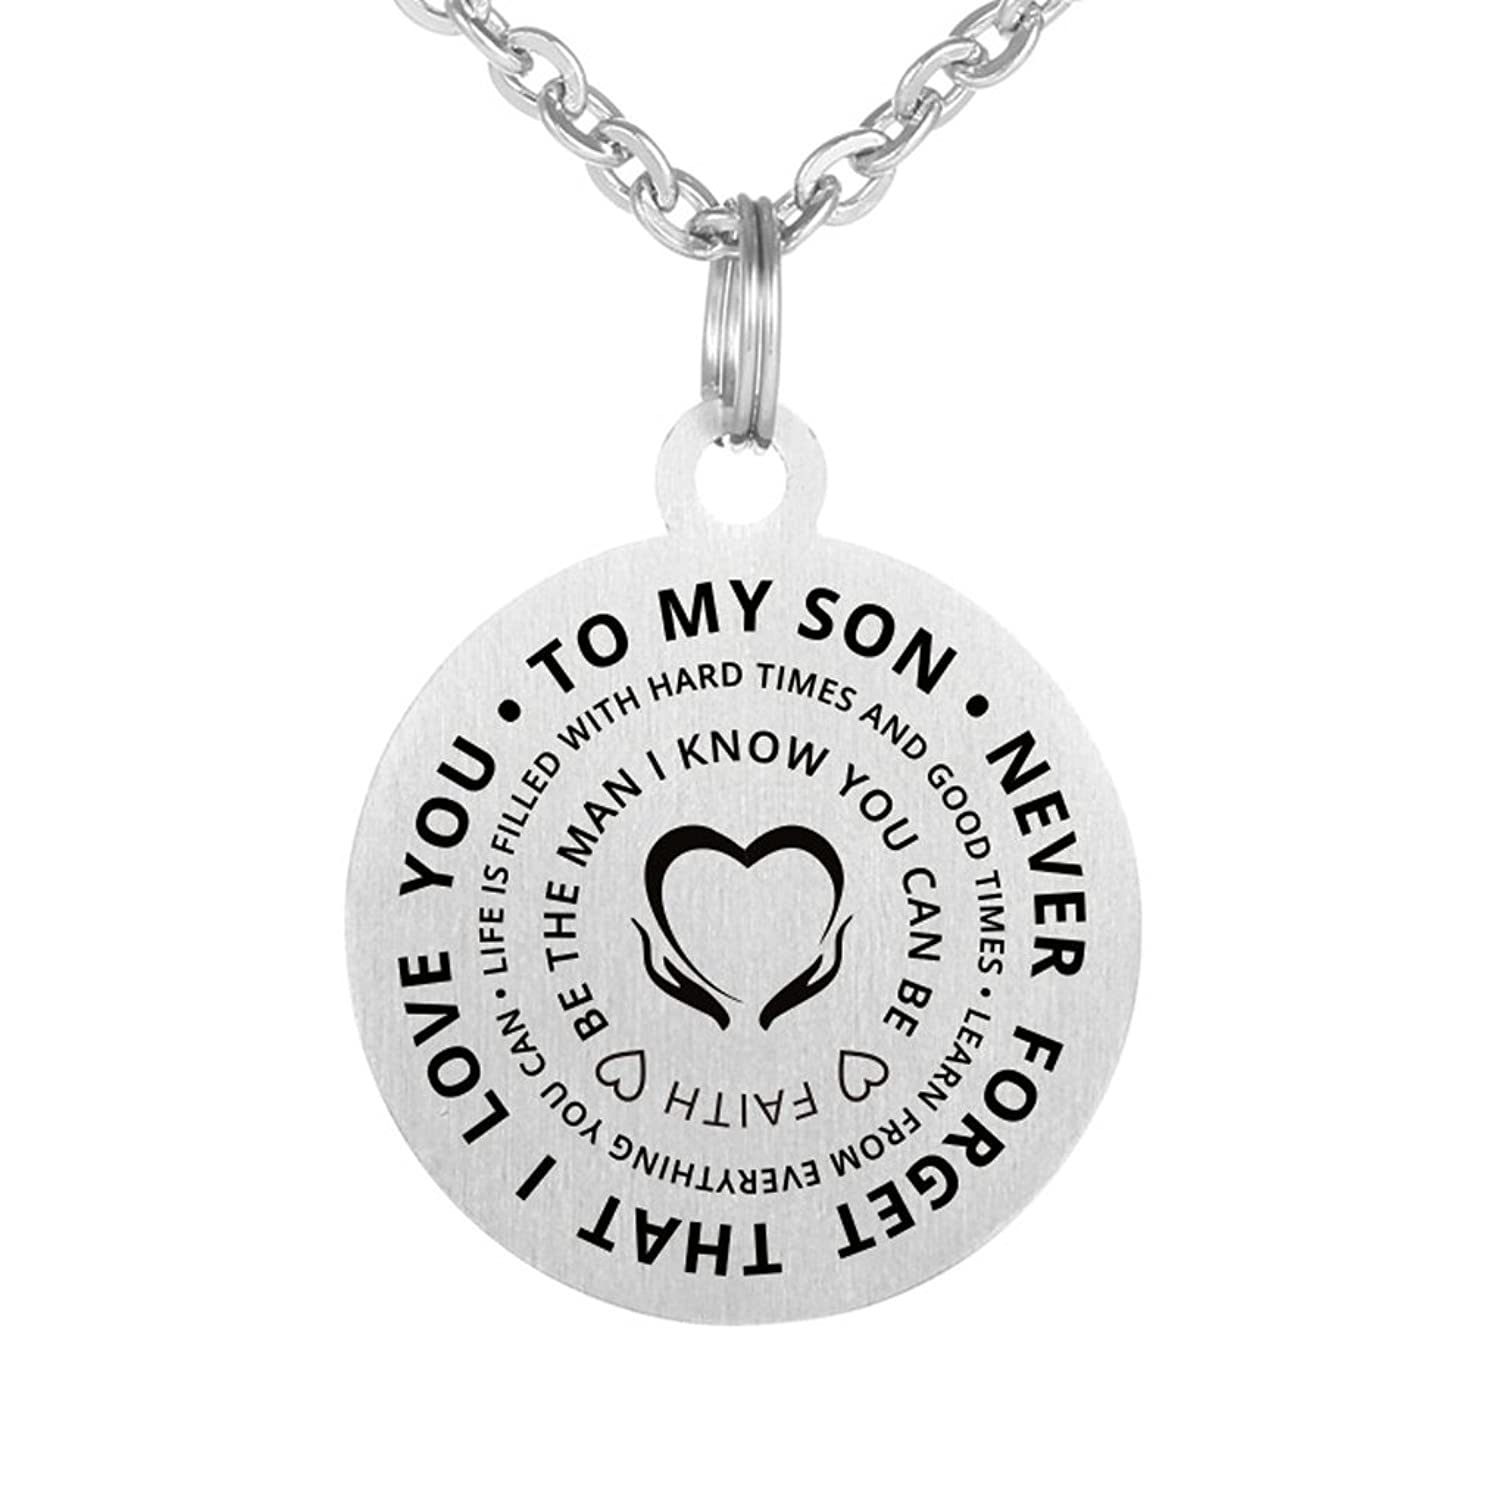 Inspirational Love Birthday Gift To My Son Never Forget That I Love You Stainless Steel Dog Tag Pendant Necklace Keychain Be The Man